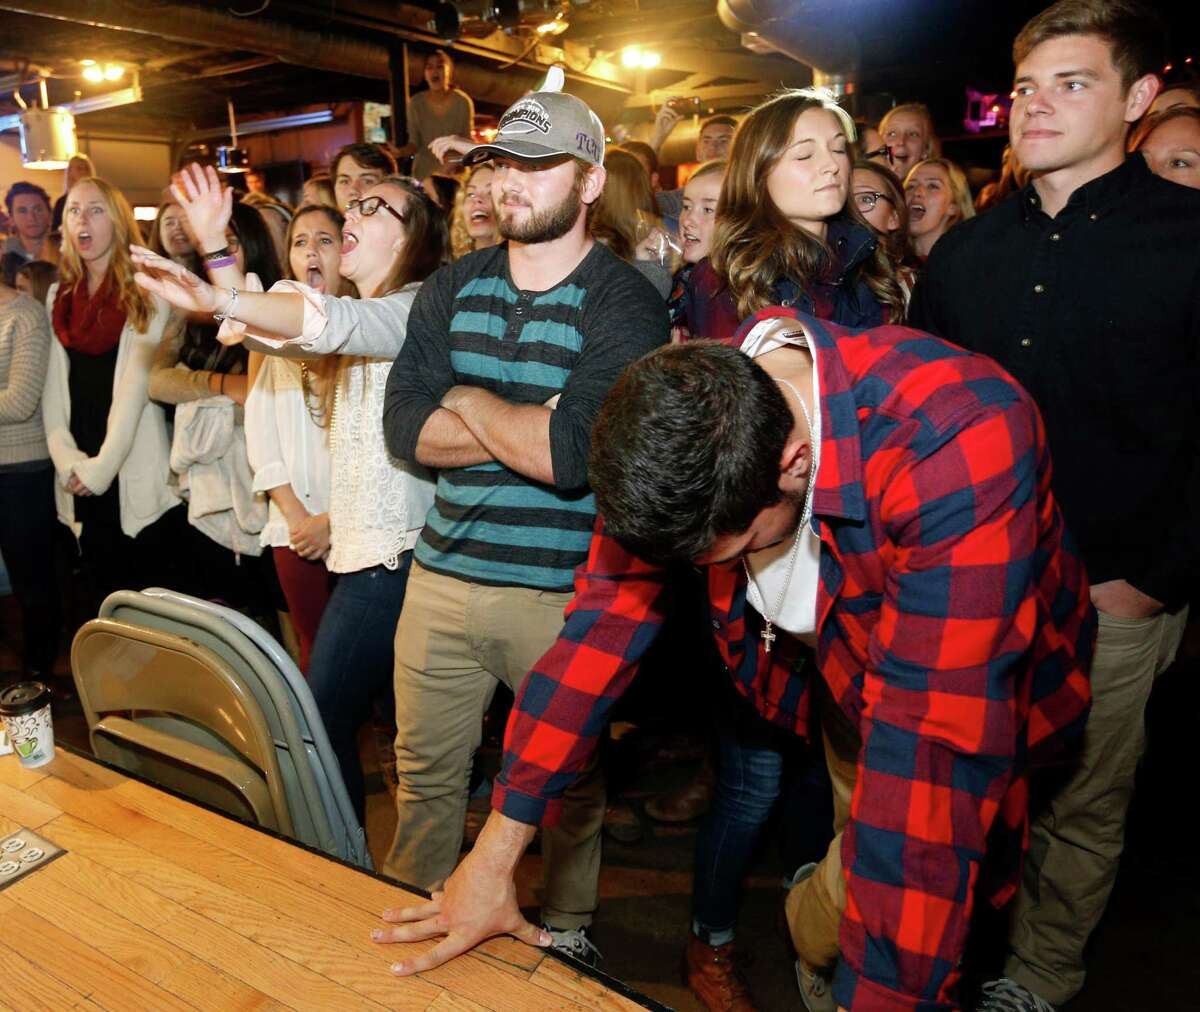 TCU students react, including TCU football player Colten Christensen (wearing hat) and Chase Distasio, foreground with head down, after learning that TCU will not be one of the four teams in the NCAA College Football Playoff at a watch party at the Aardvark near TCU campus Sunday Dec. 7, 2014. (AP Photo/The Fort Worth Star-Telegram, Richard W. Rodriguez) MAGS OUT (FORT WORTH WEEKLY, 360 WEST); ORG XMIT: TXFOR203